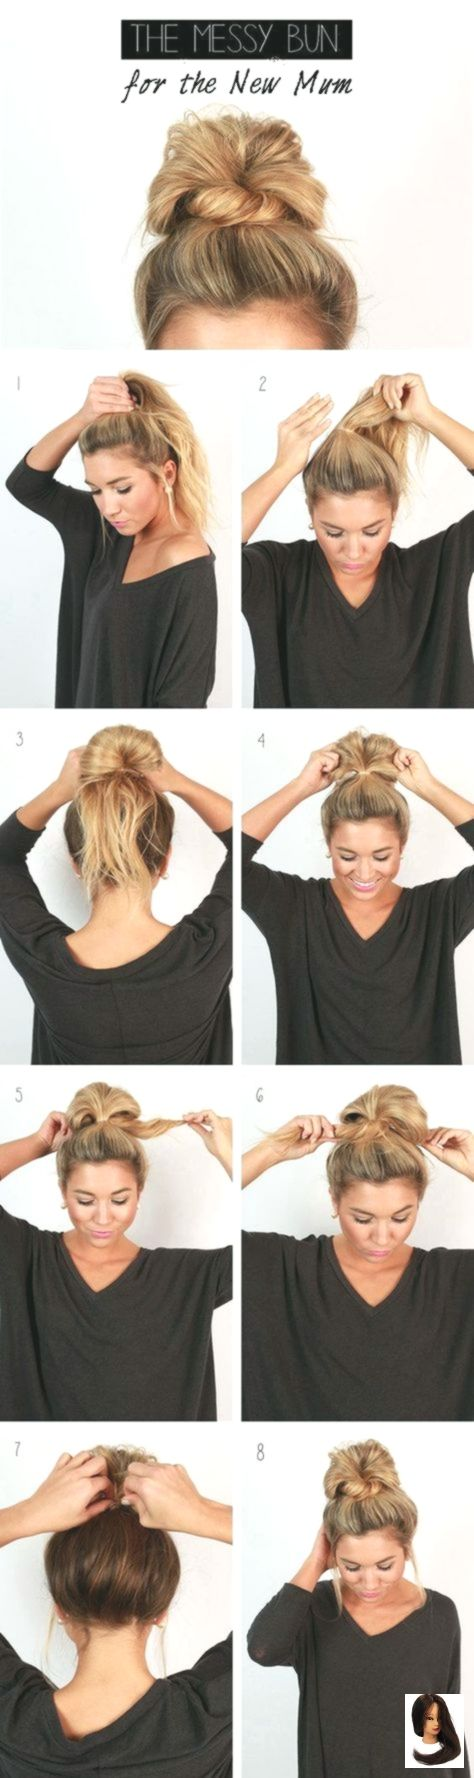 10 superlight hairstyles to be sweet at school without effort